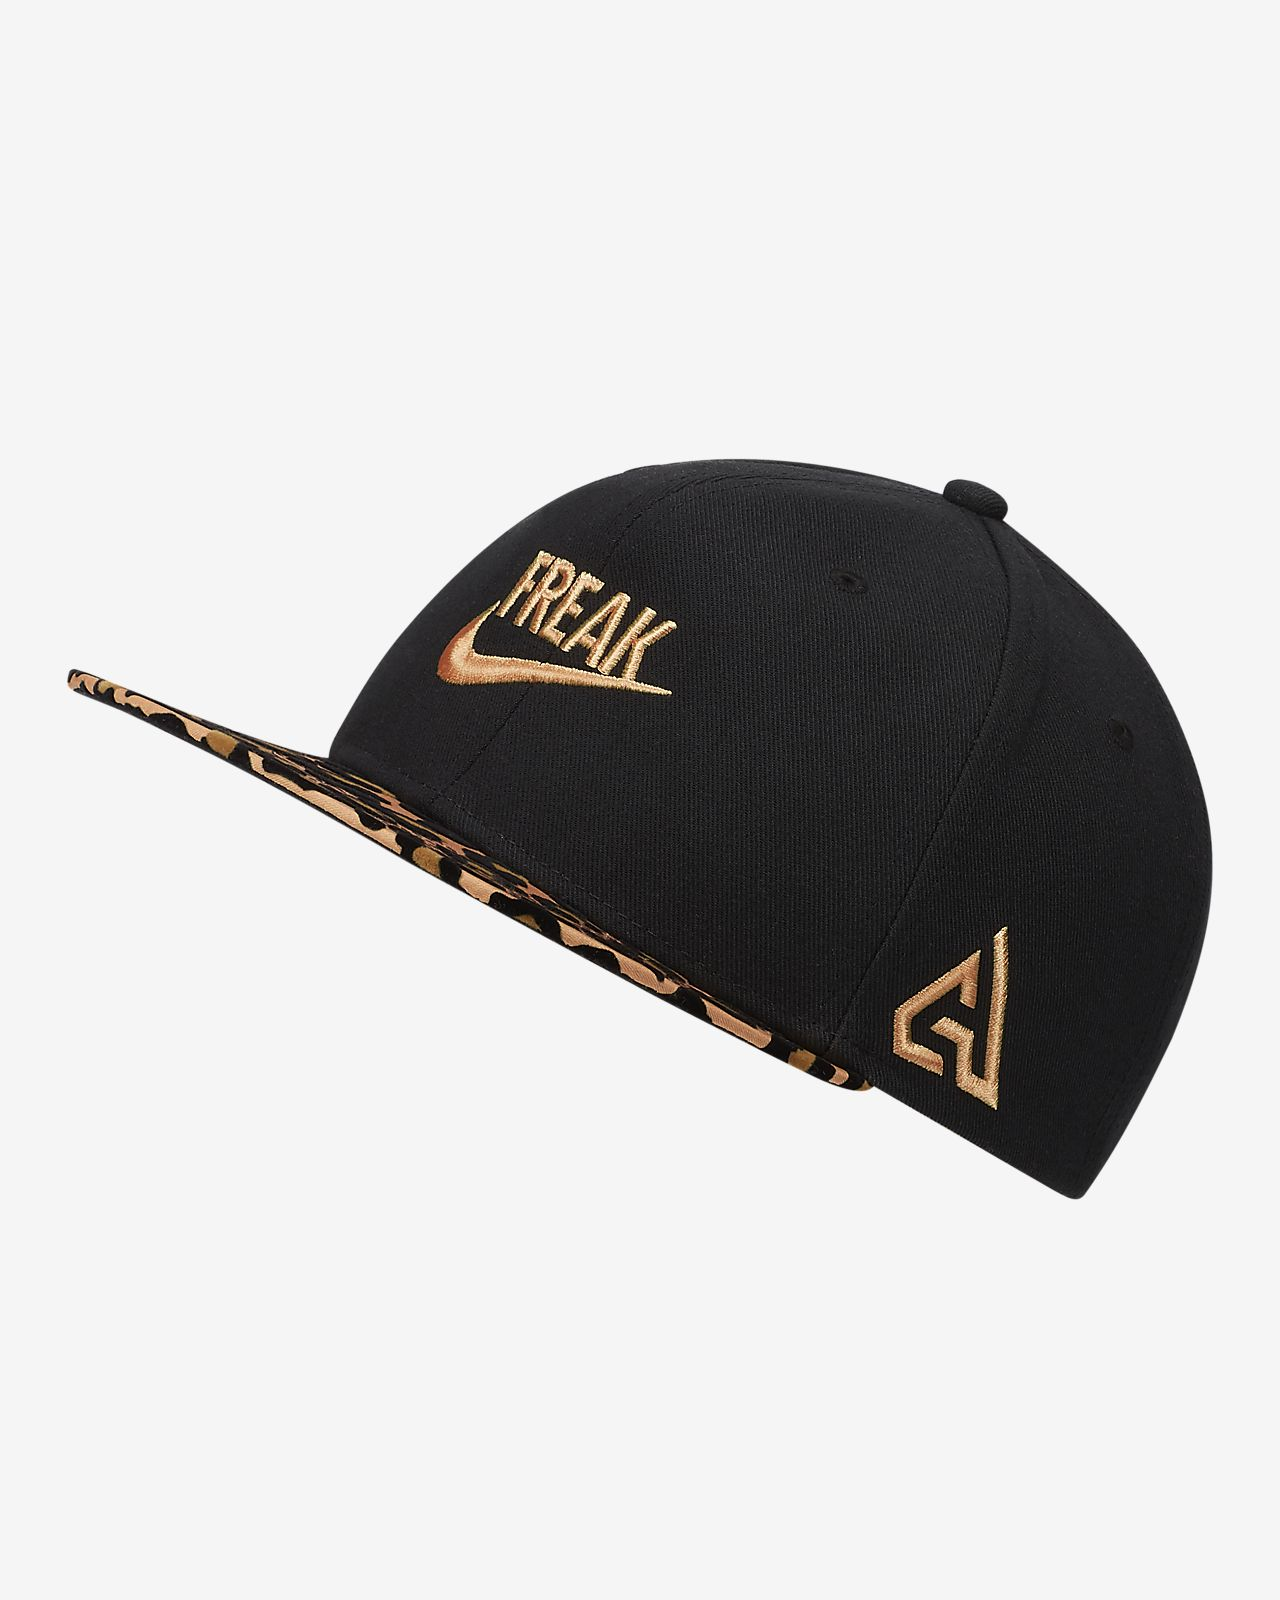 Giannis Nike Pro 'Coming to America' Cap